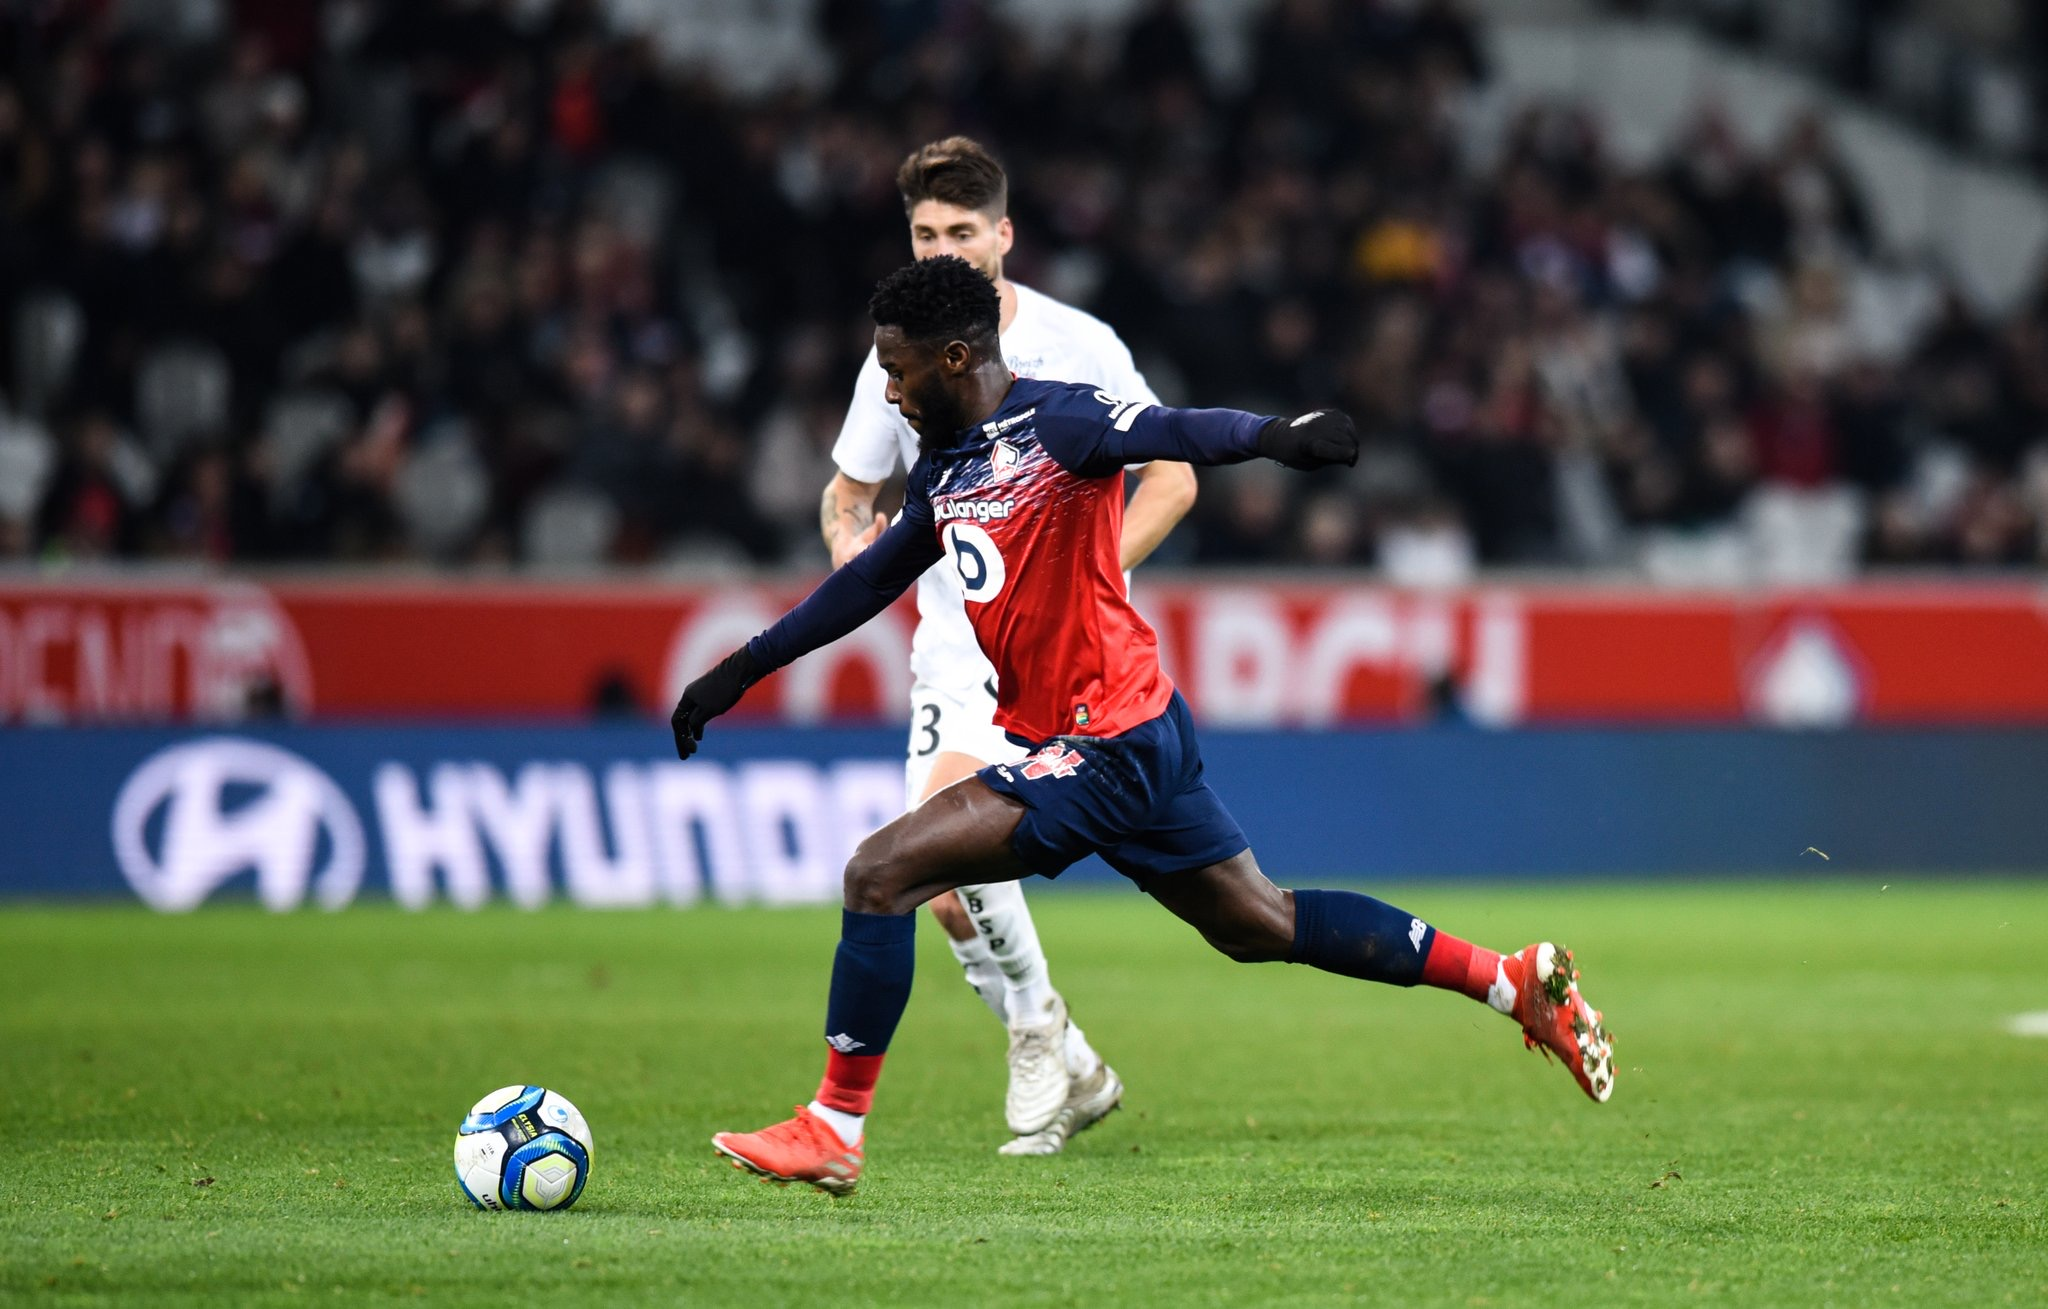 #Ligue1 - Lille montre sur le podium